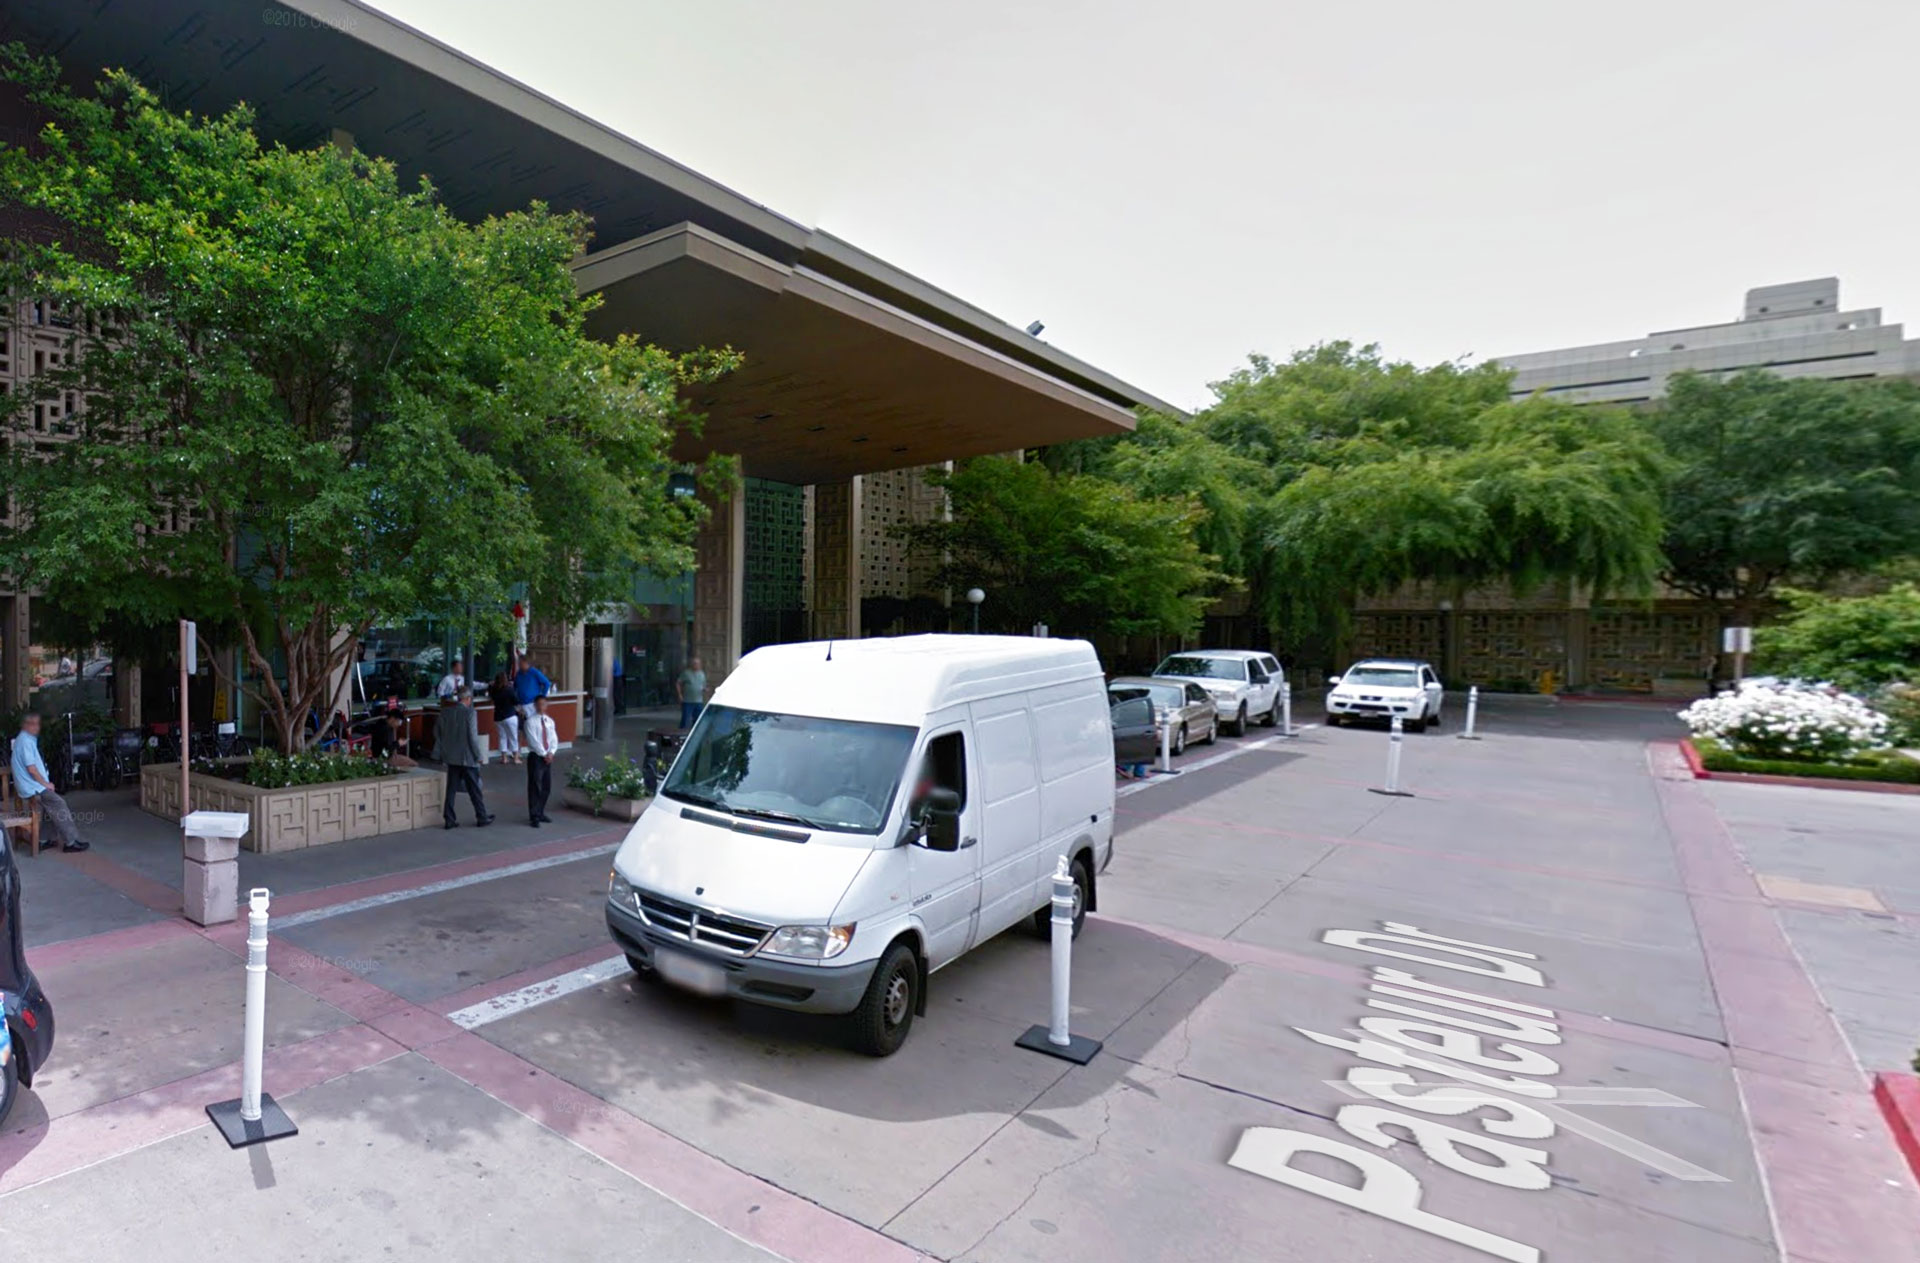 Cal/OSHA Launches Probe Into Attack That Injured Two Stanford Hospital Psych Nurses